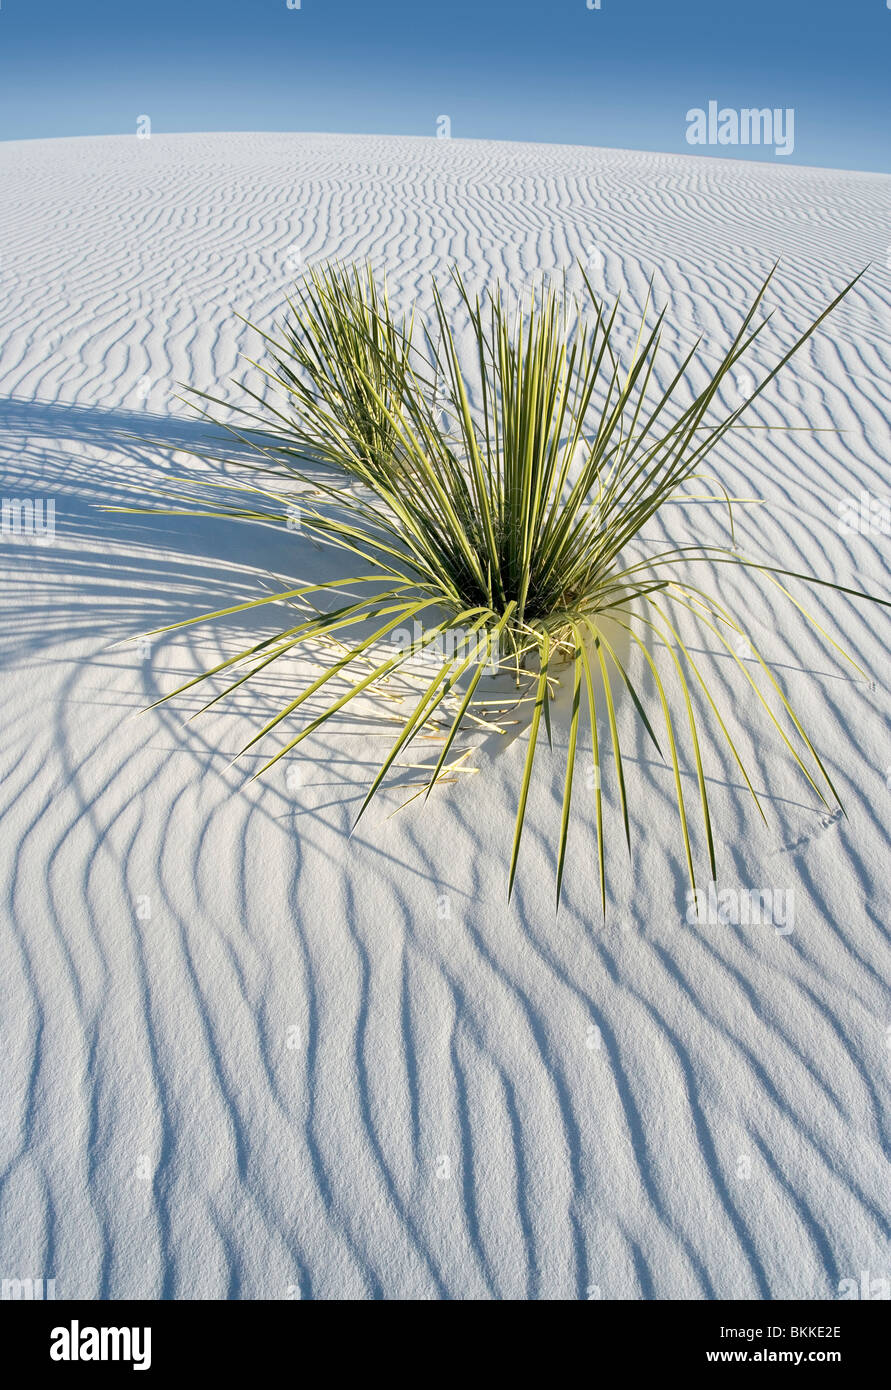 A yucca plant growing at White Sands National Monument, New Mexico. - Stock Image